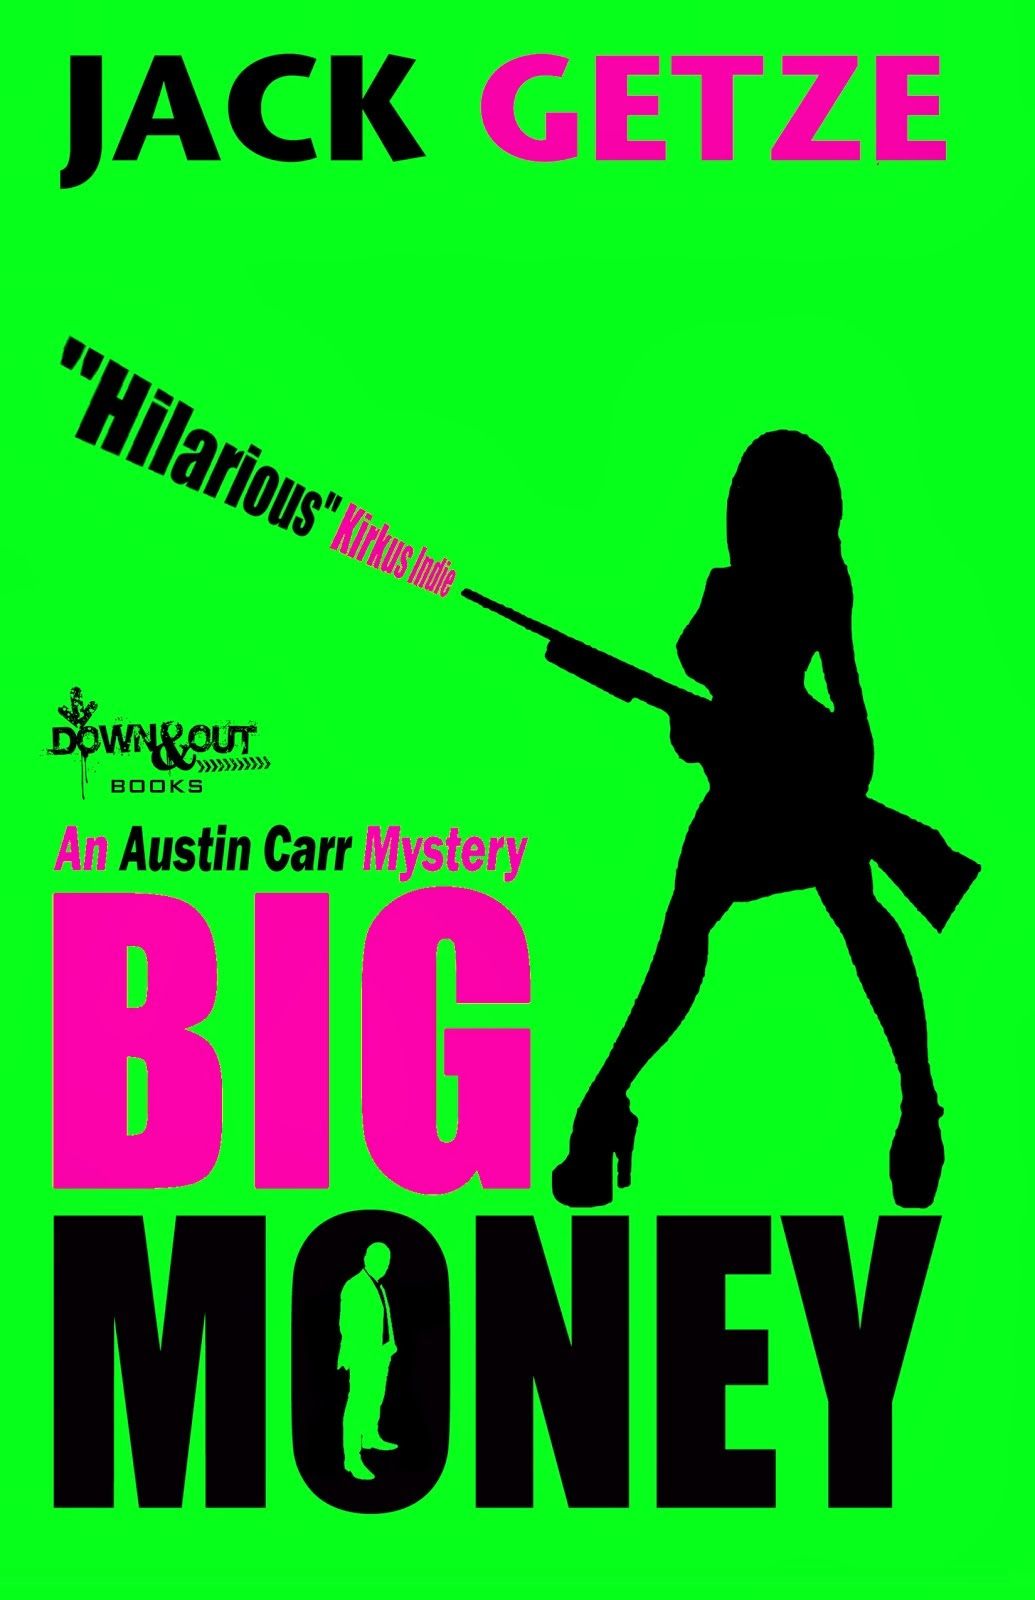 BIG MONEY, Complete Reviews